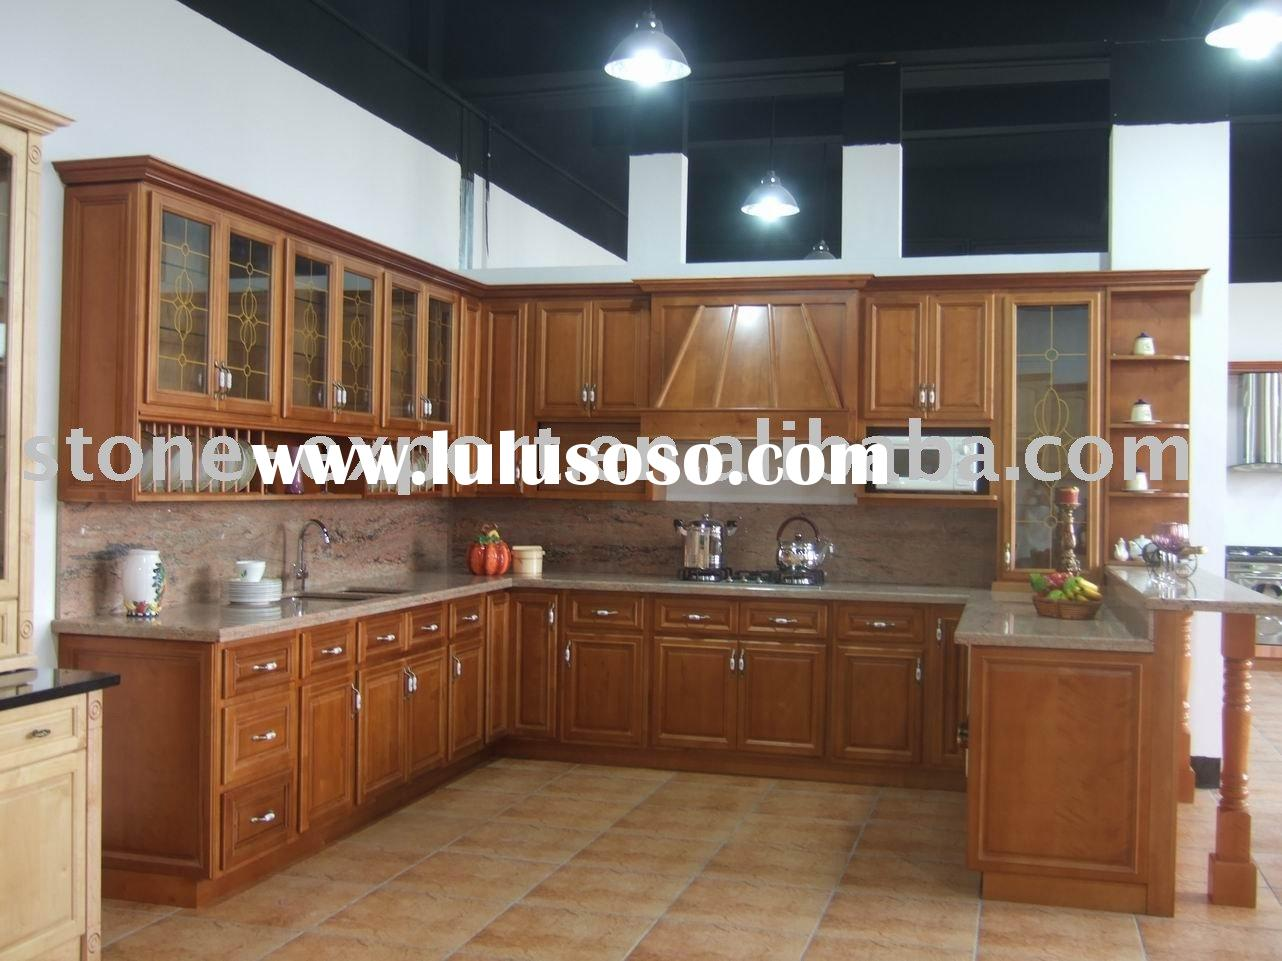 Solid Wood Kitchen Cabinet (Alder Wood)